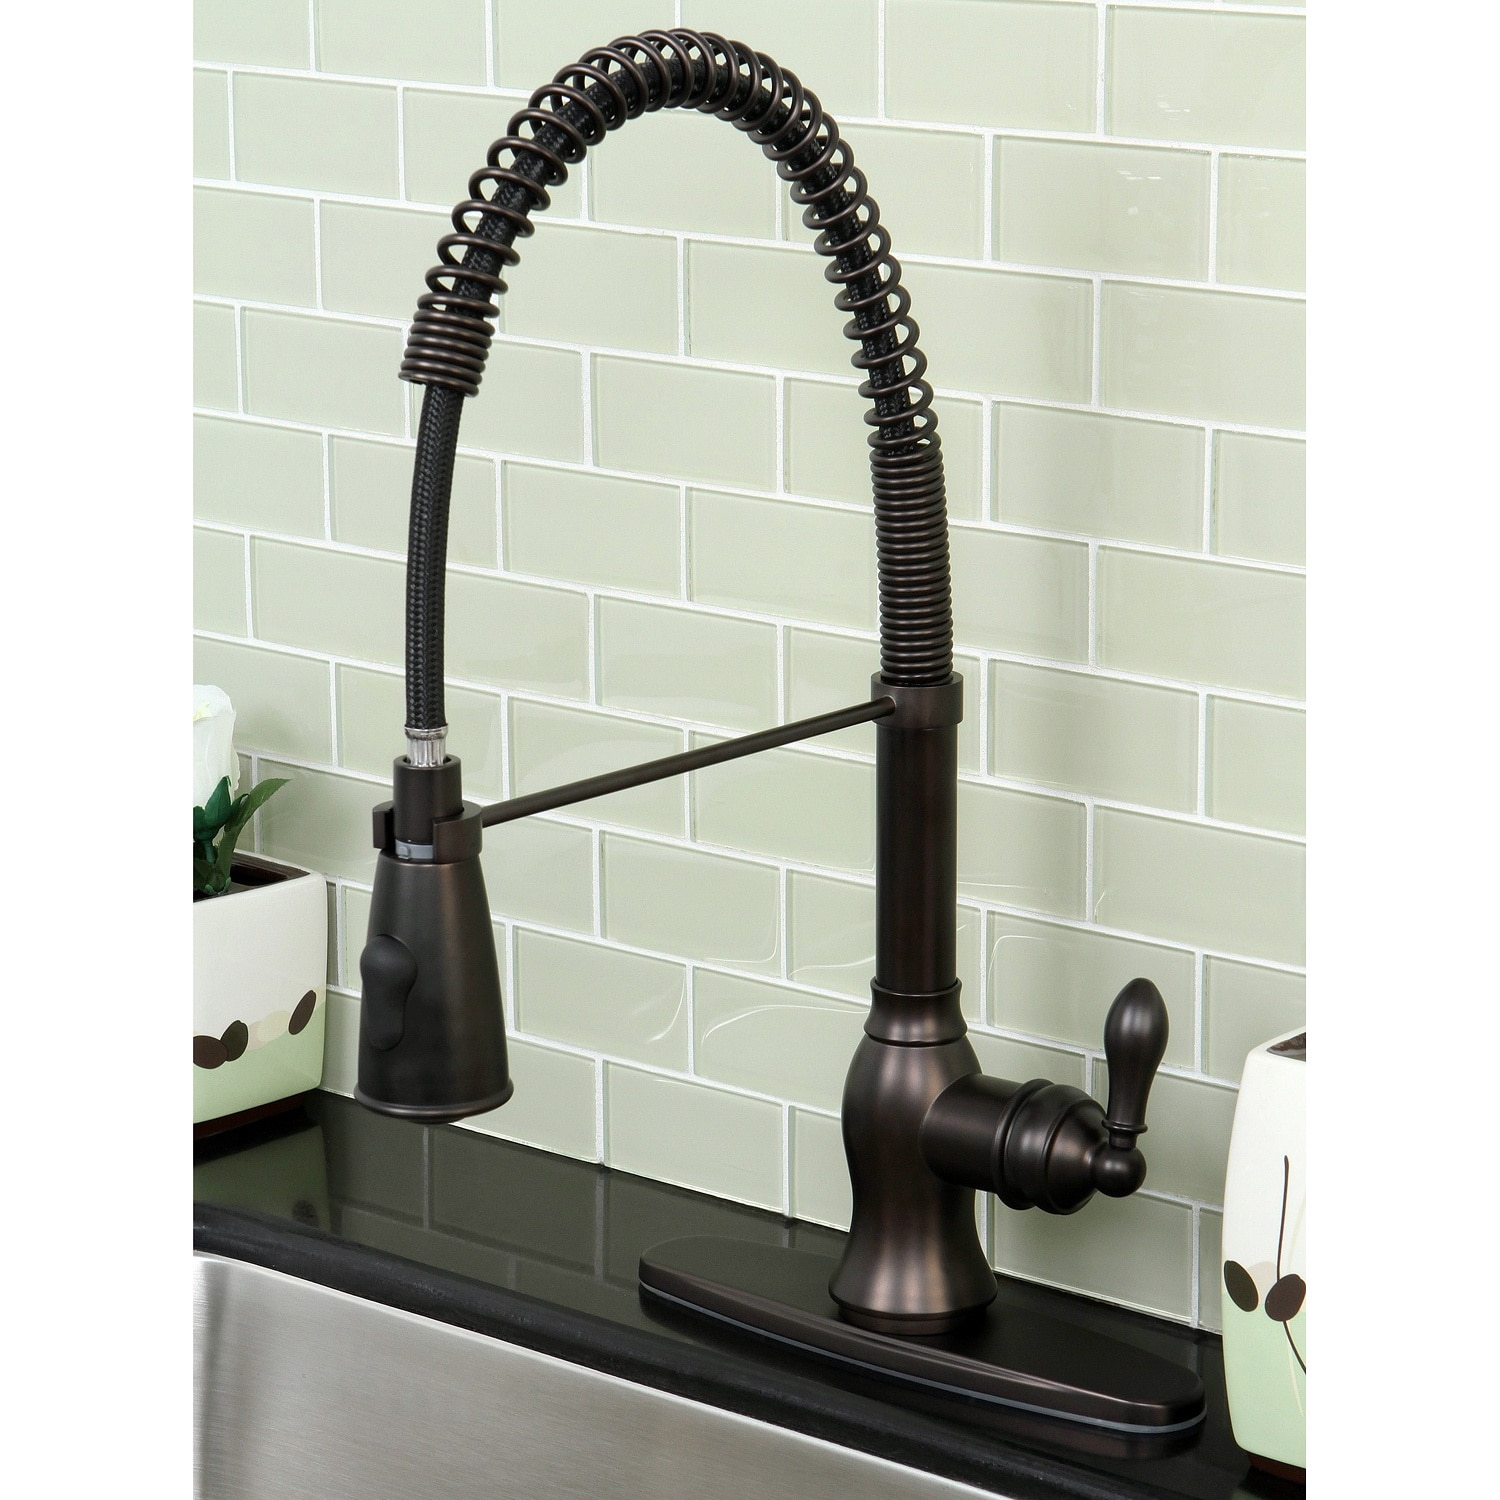 pull out kitchen faucets cheap cabinets nj shop american classic modern oil rubbed bronze spiral down faucet free shipping today overstock com 5266825